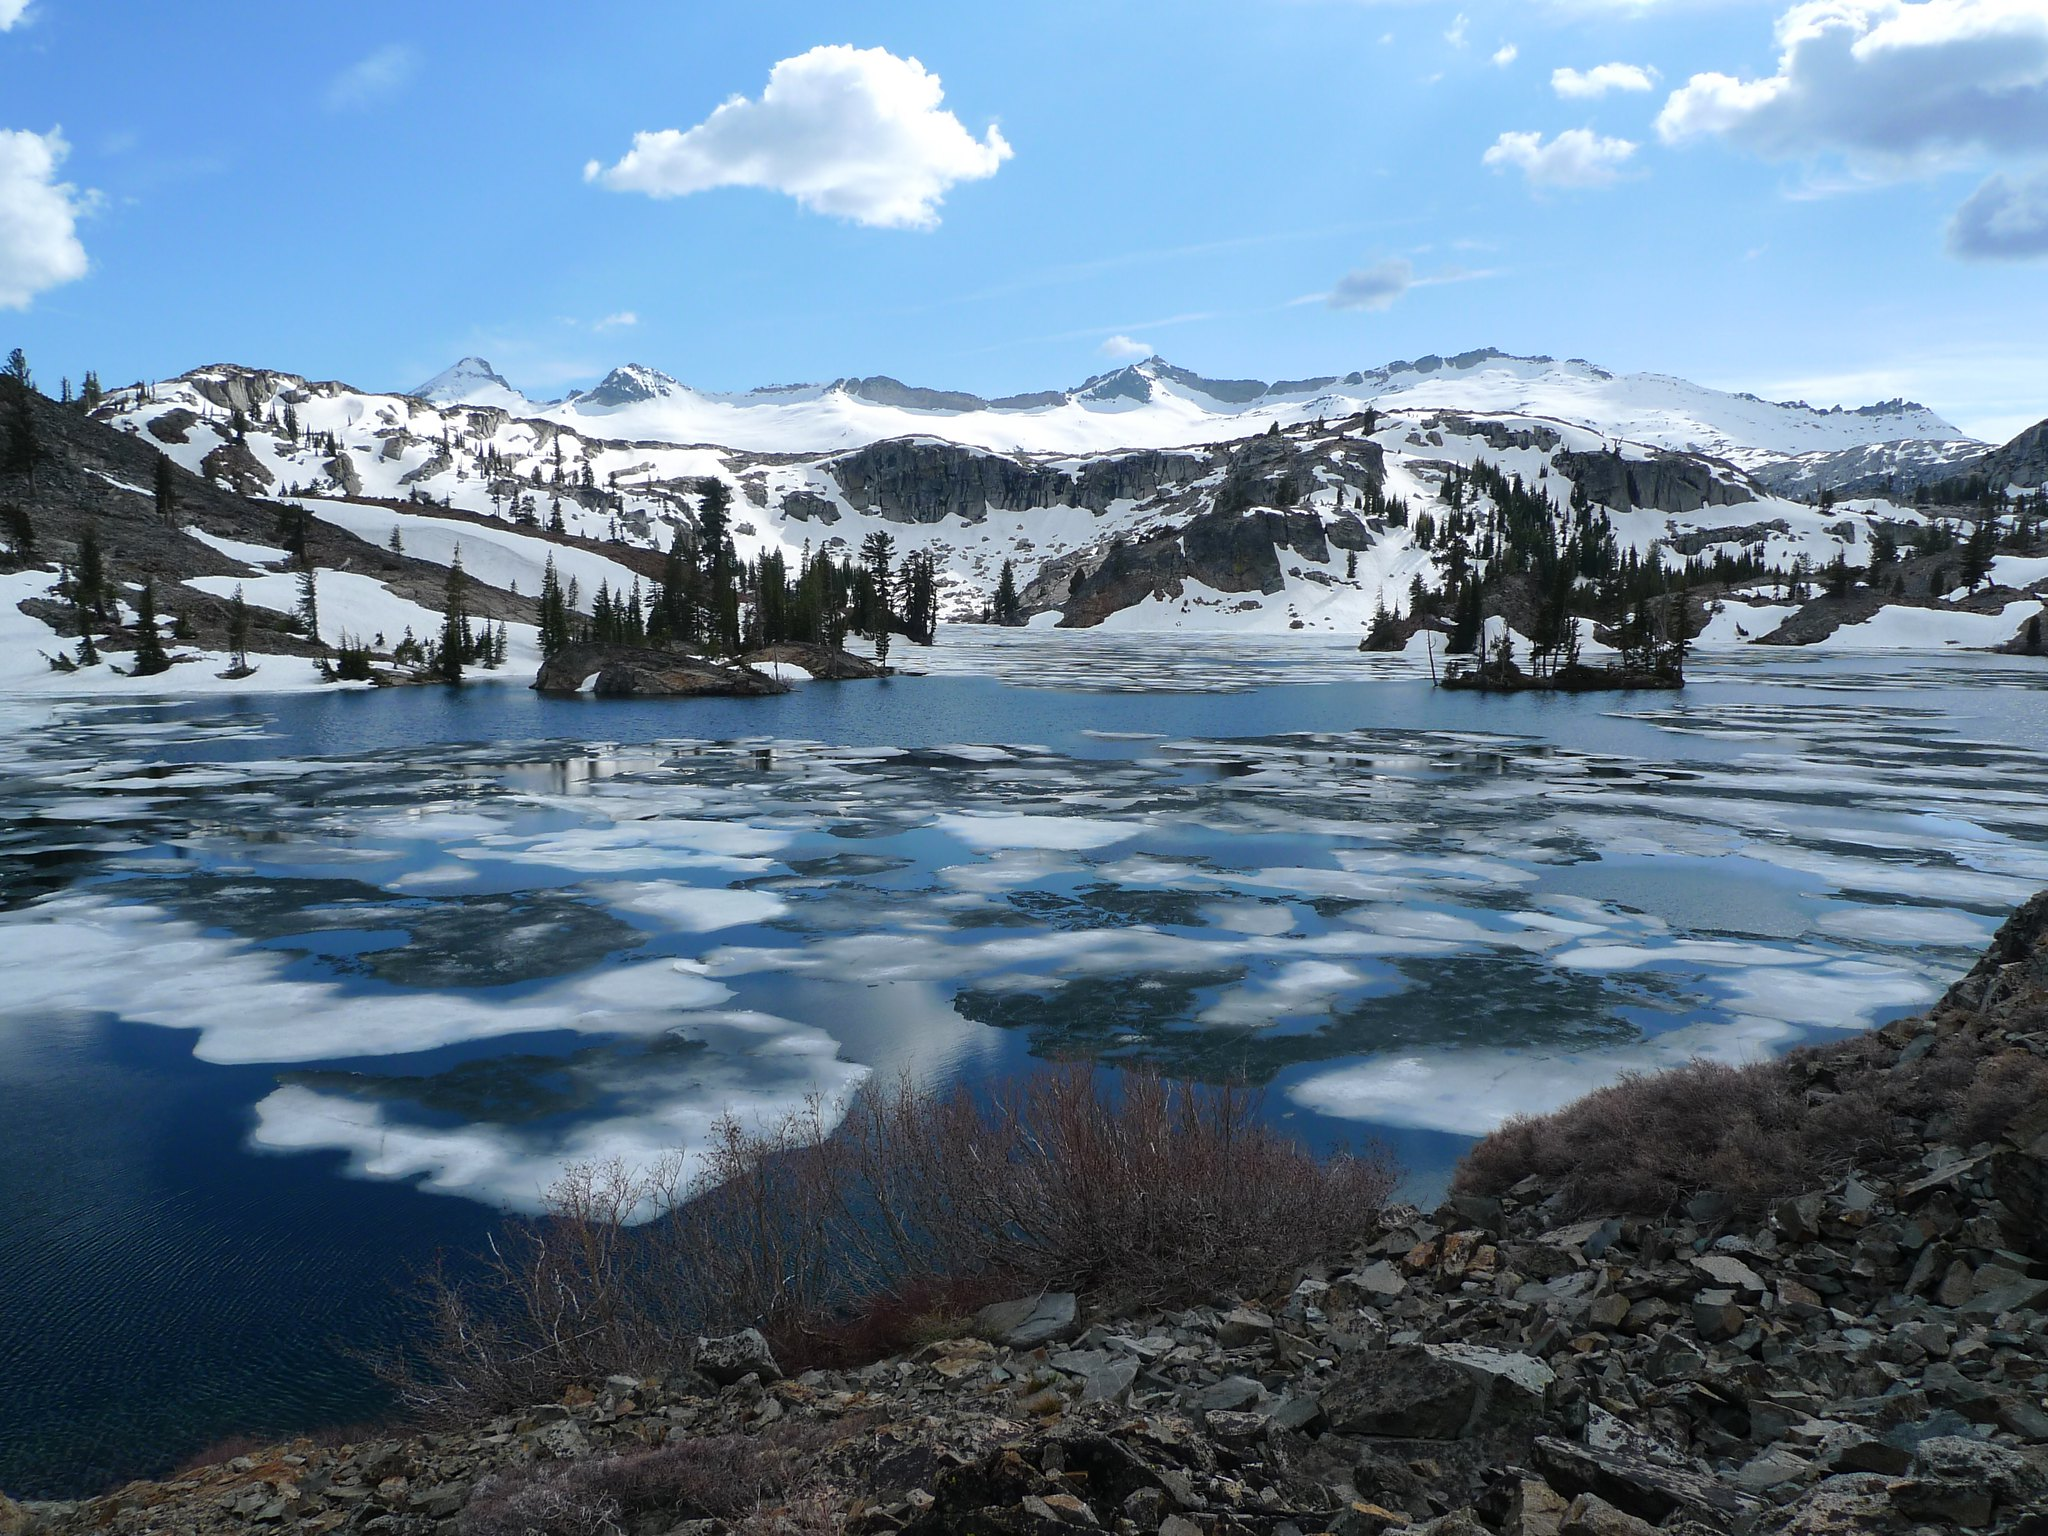 Heather Lake has some ice on it. The peaks of the Crystal Range behind are still blanketed in snow.